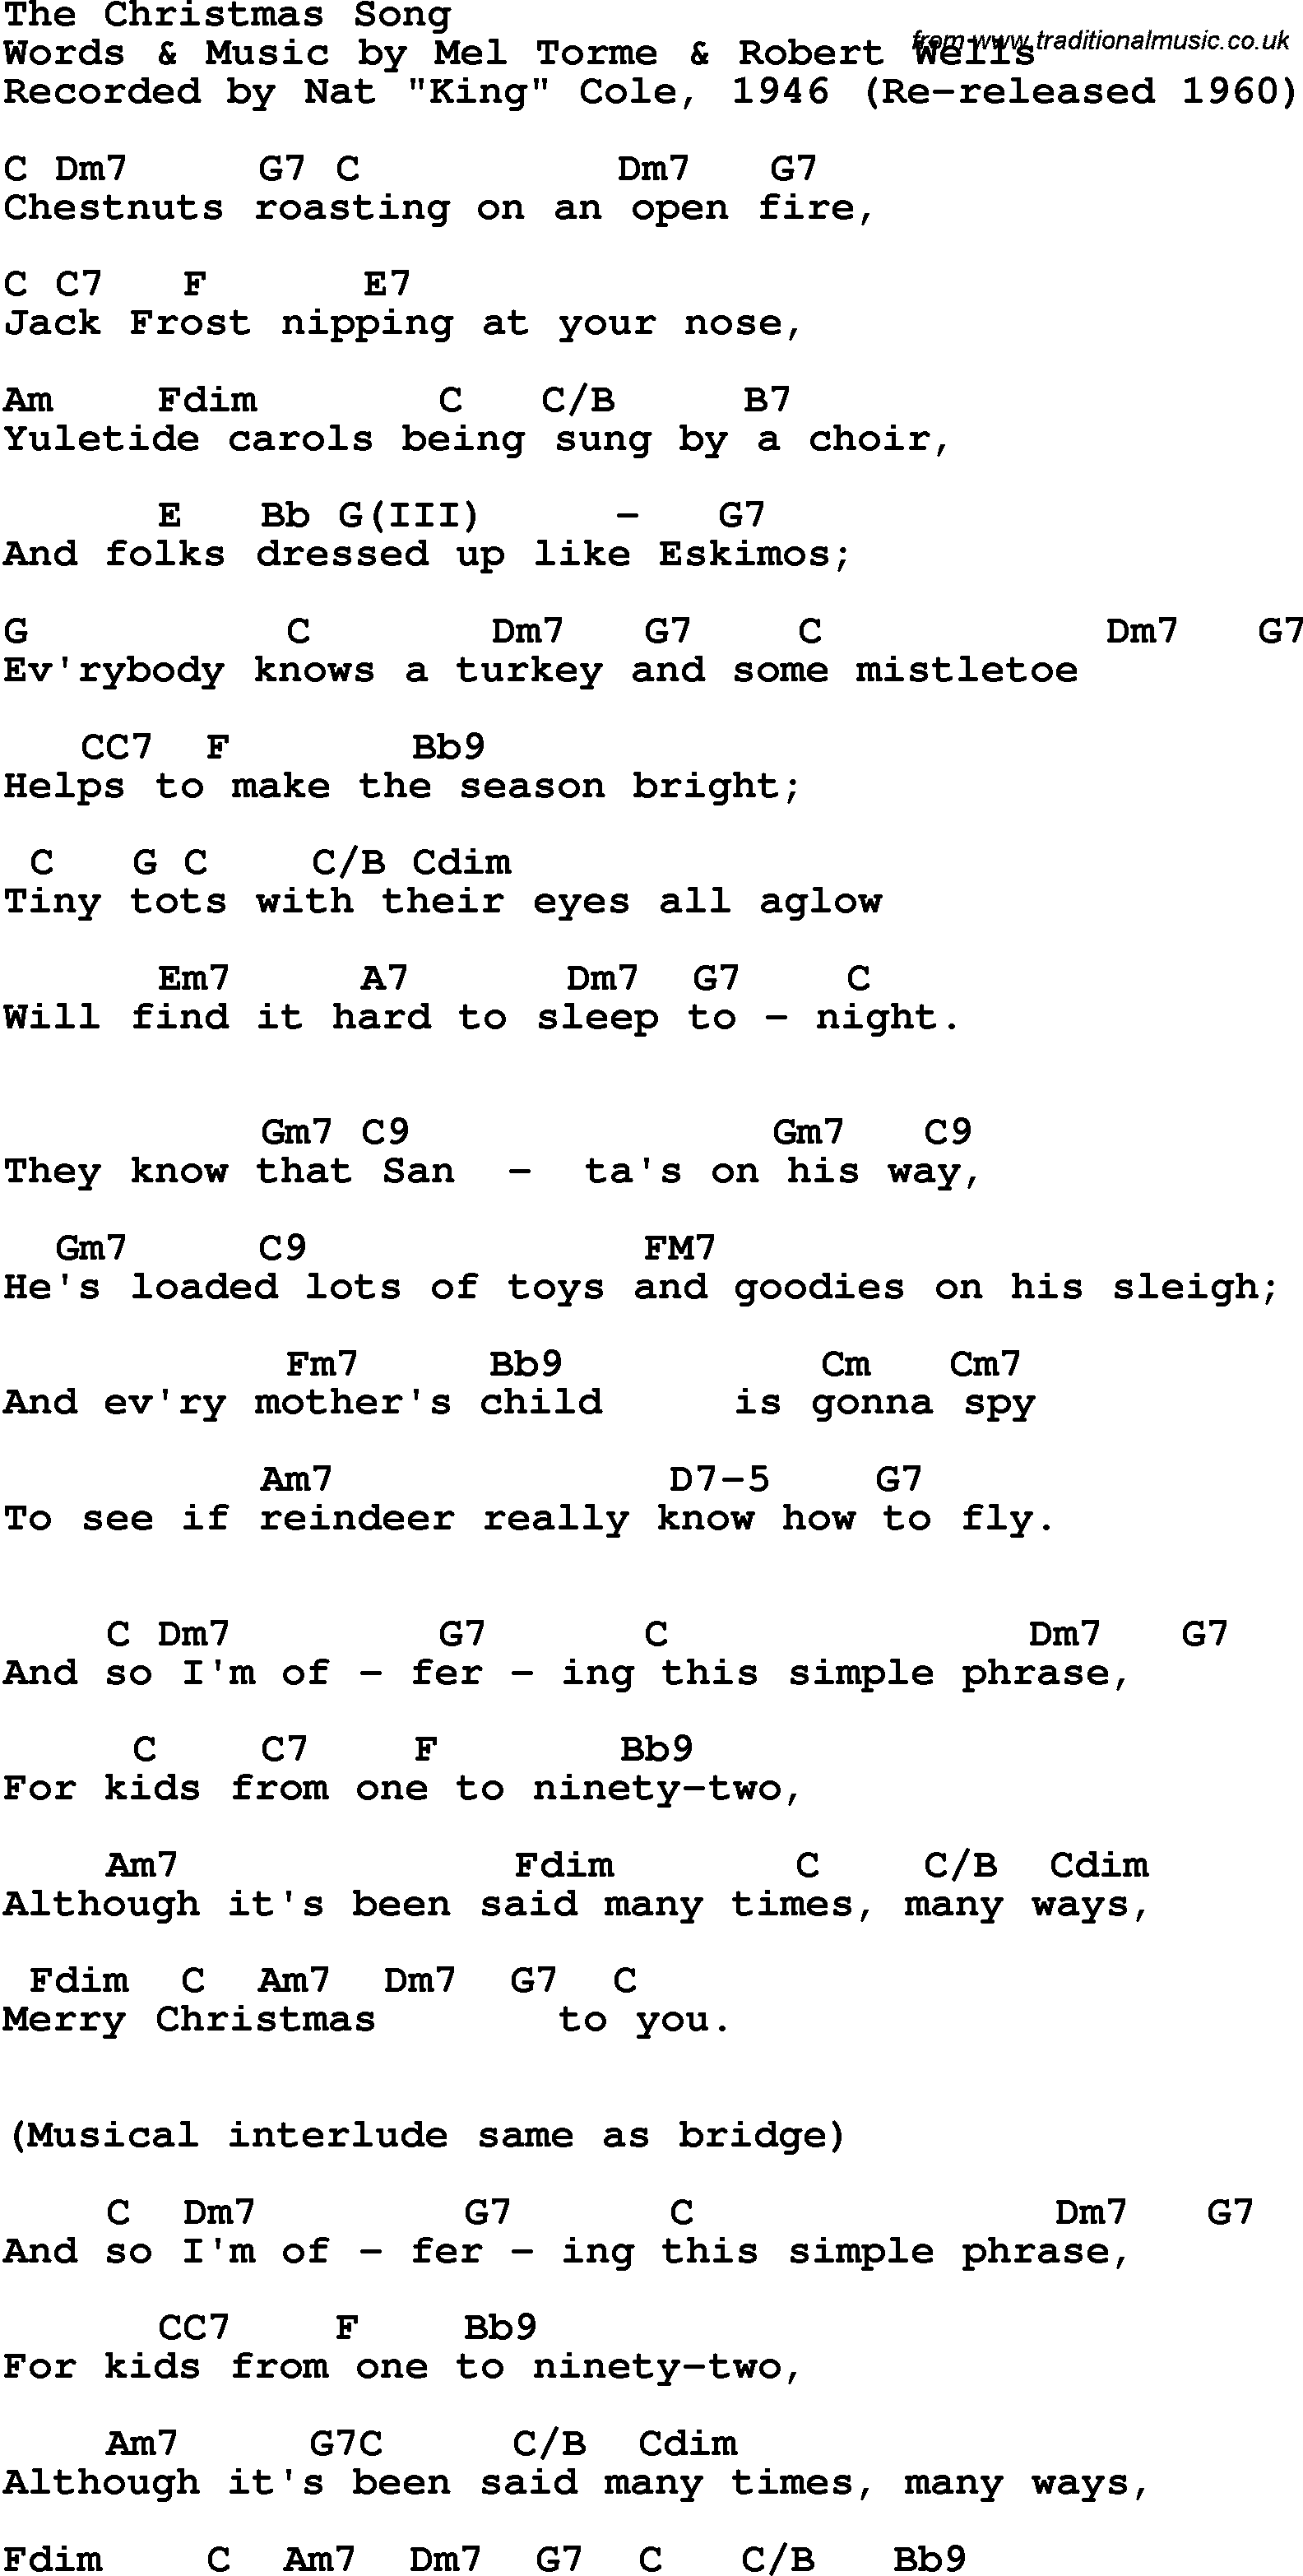 Ukulele chords 12 days of christmas song the twelve days of song lyrics with guitar chords for christmas song the nat king cole 1946 hexwebz Gallery